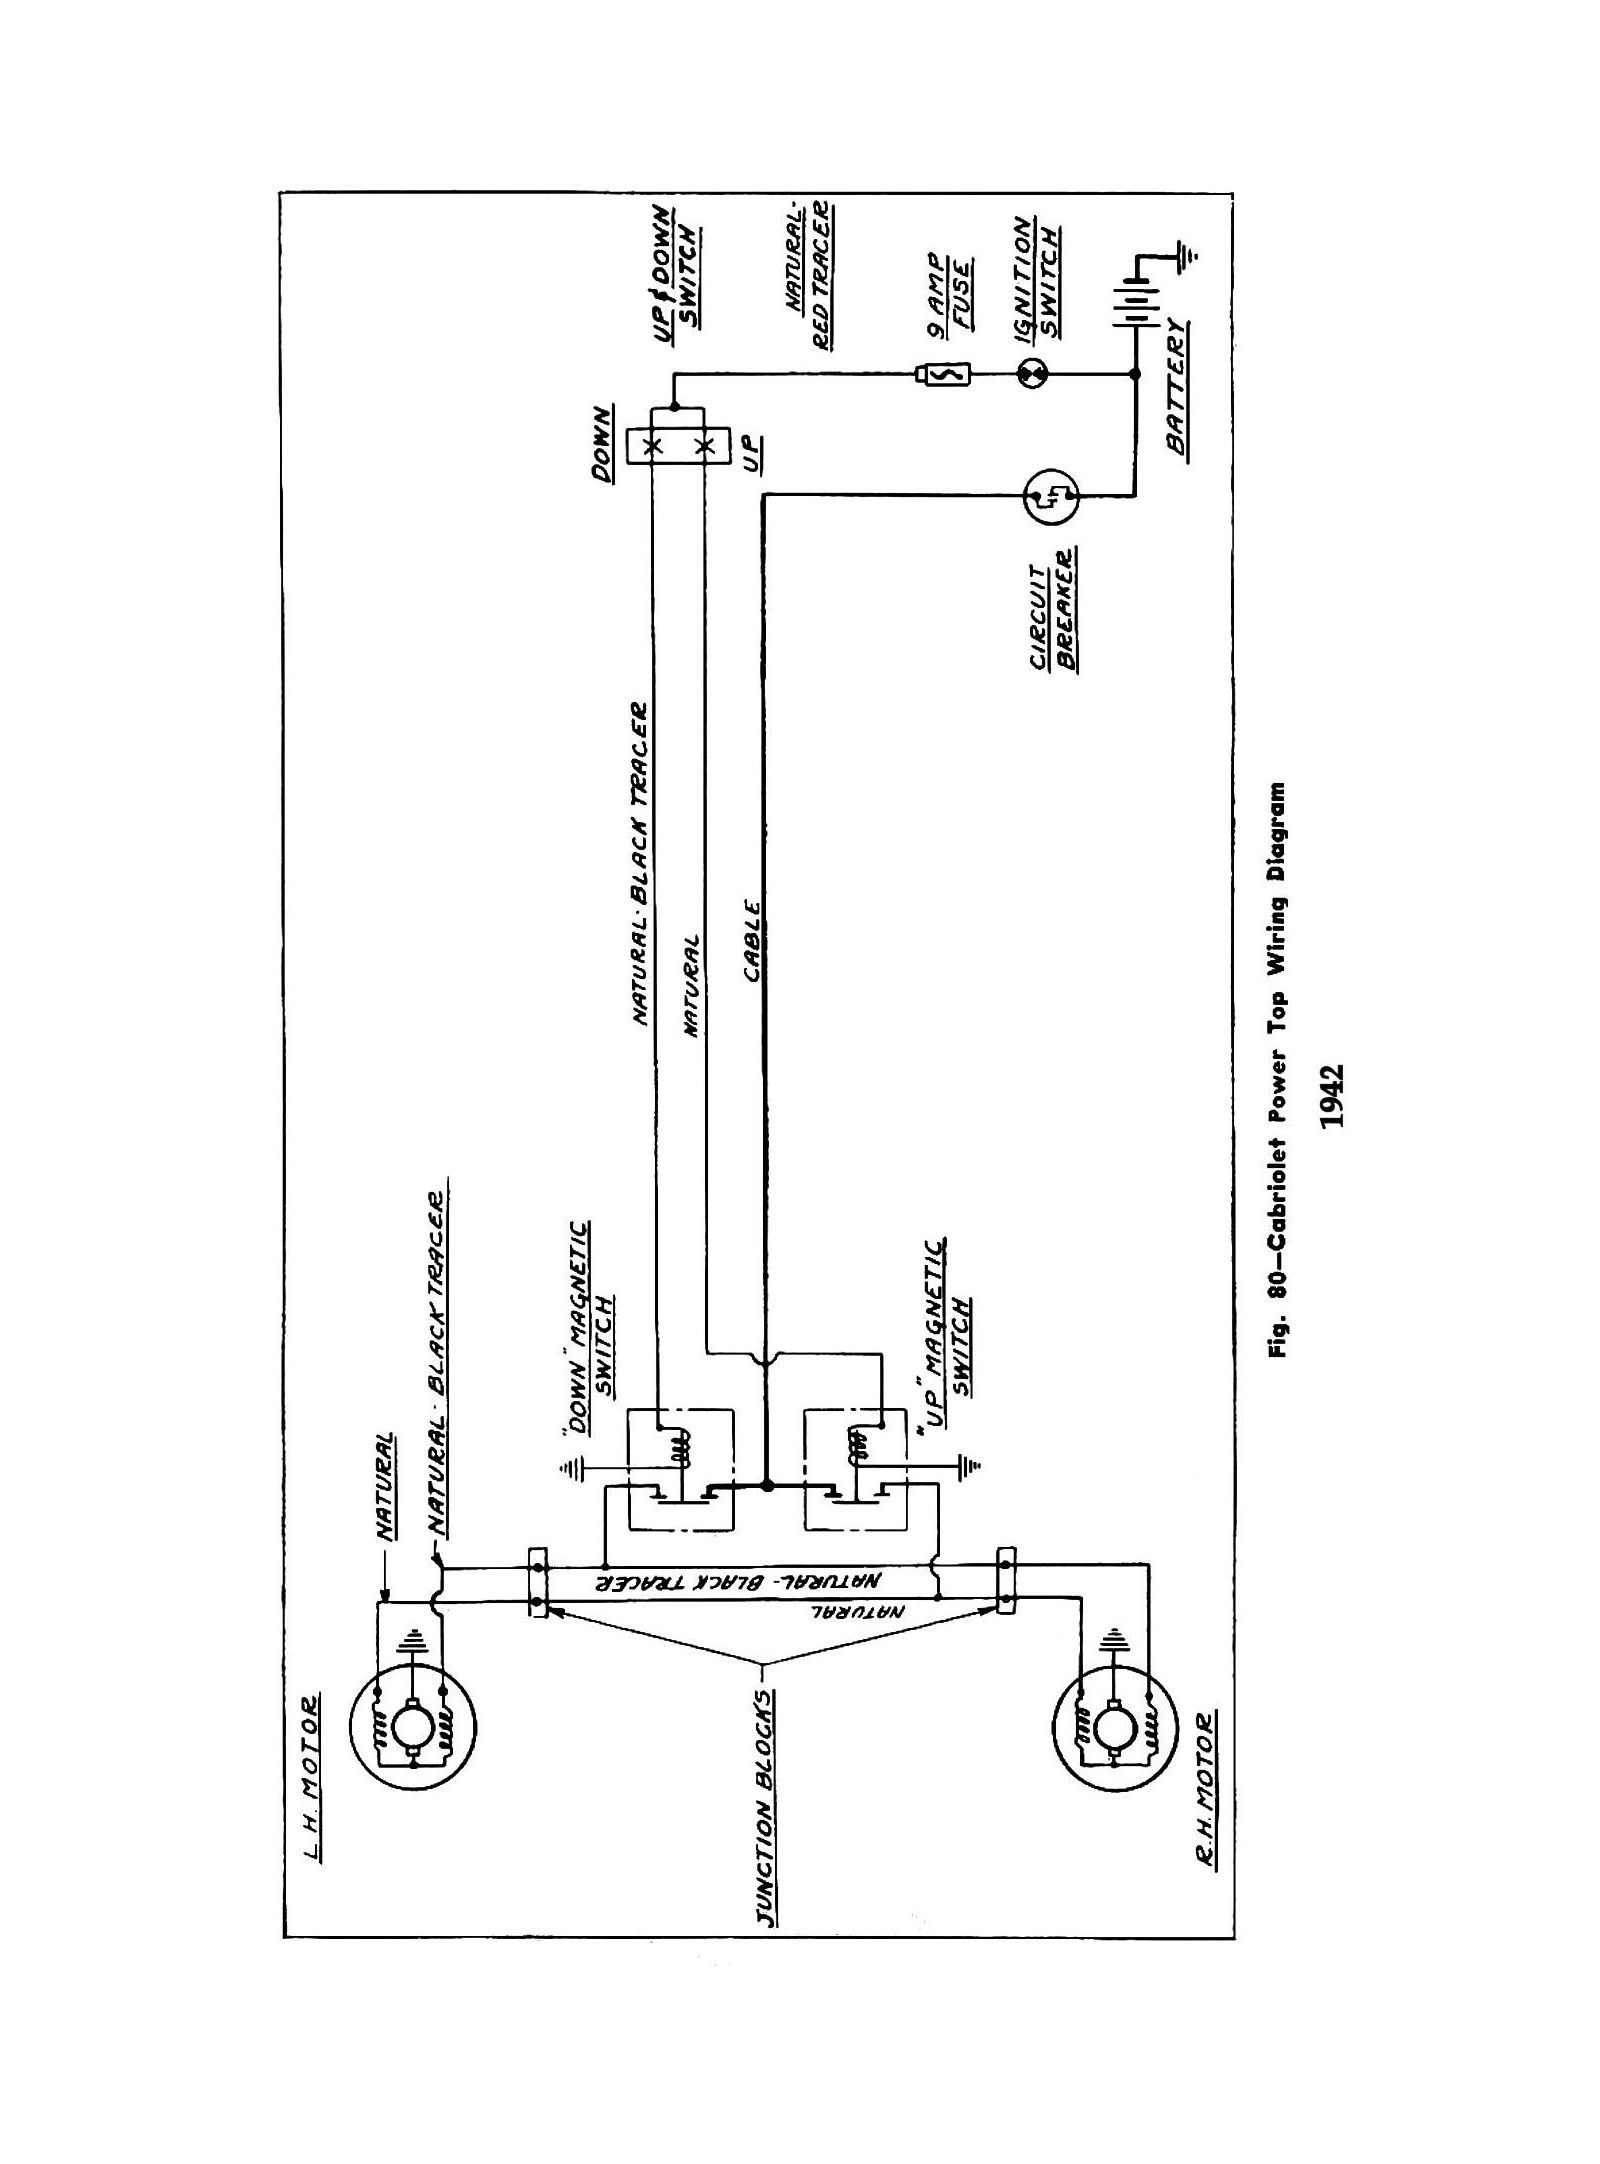 Electrical Wiring Diagram 1954 Dodge Libraries Chevy Diagrams1942 Truck 1942 Cabriolet Power Top